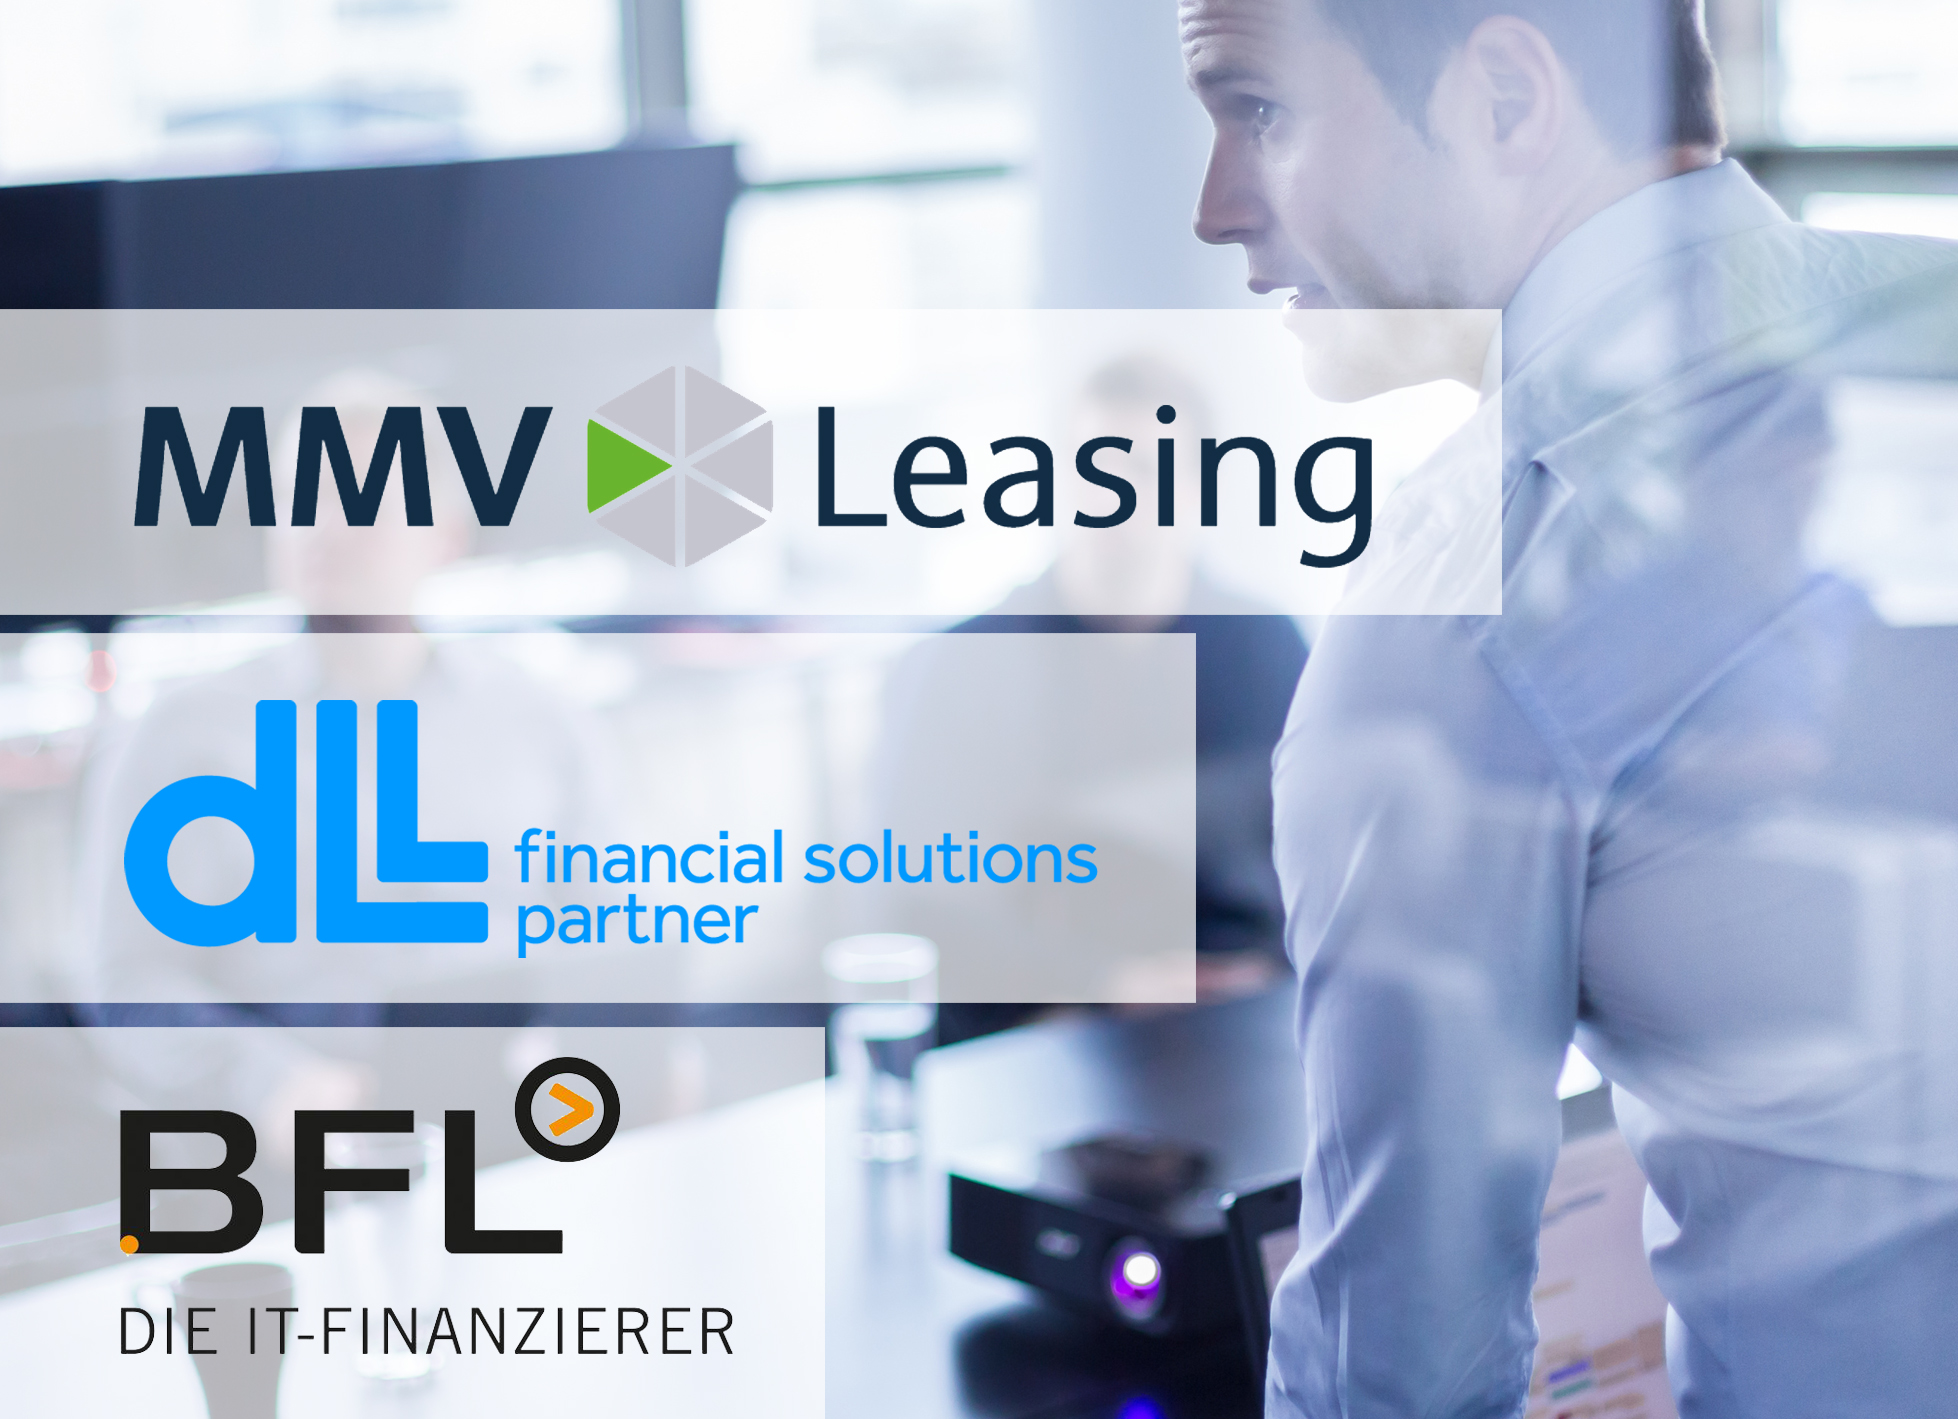 Leasing Partner MMV, BFL